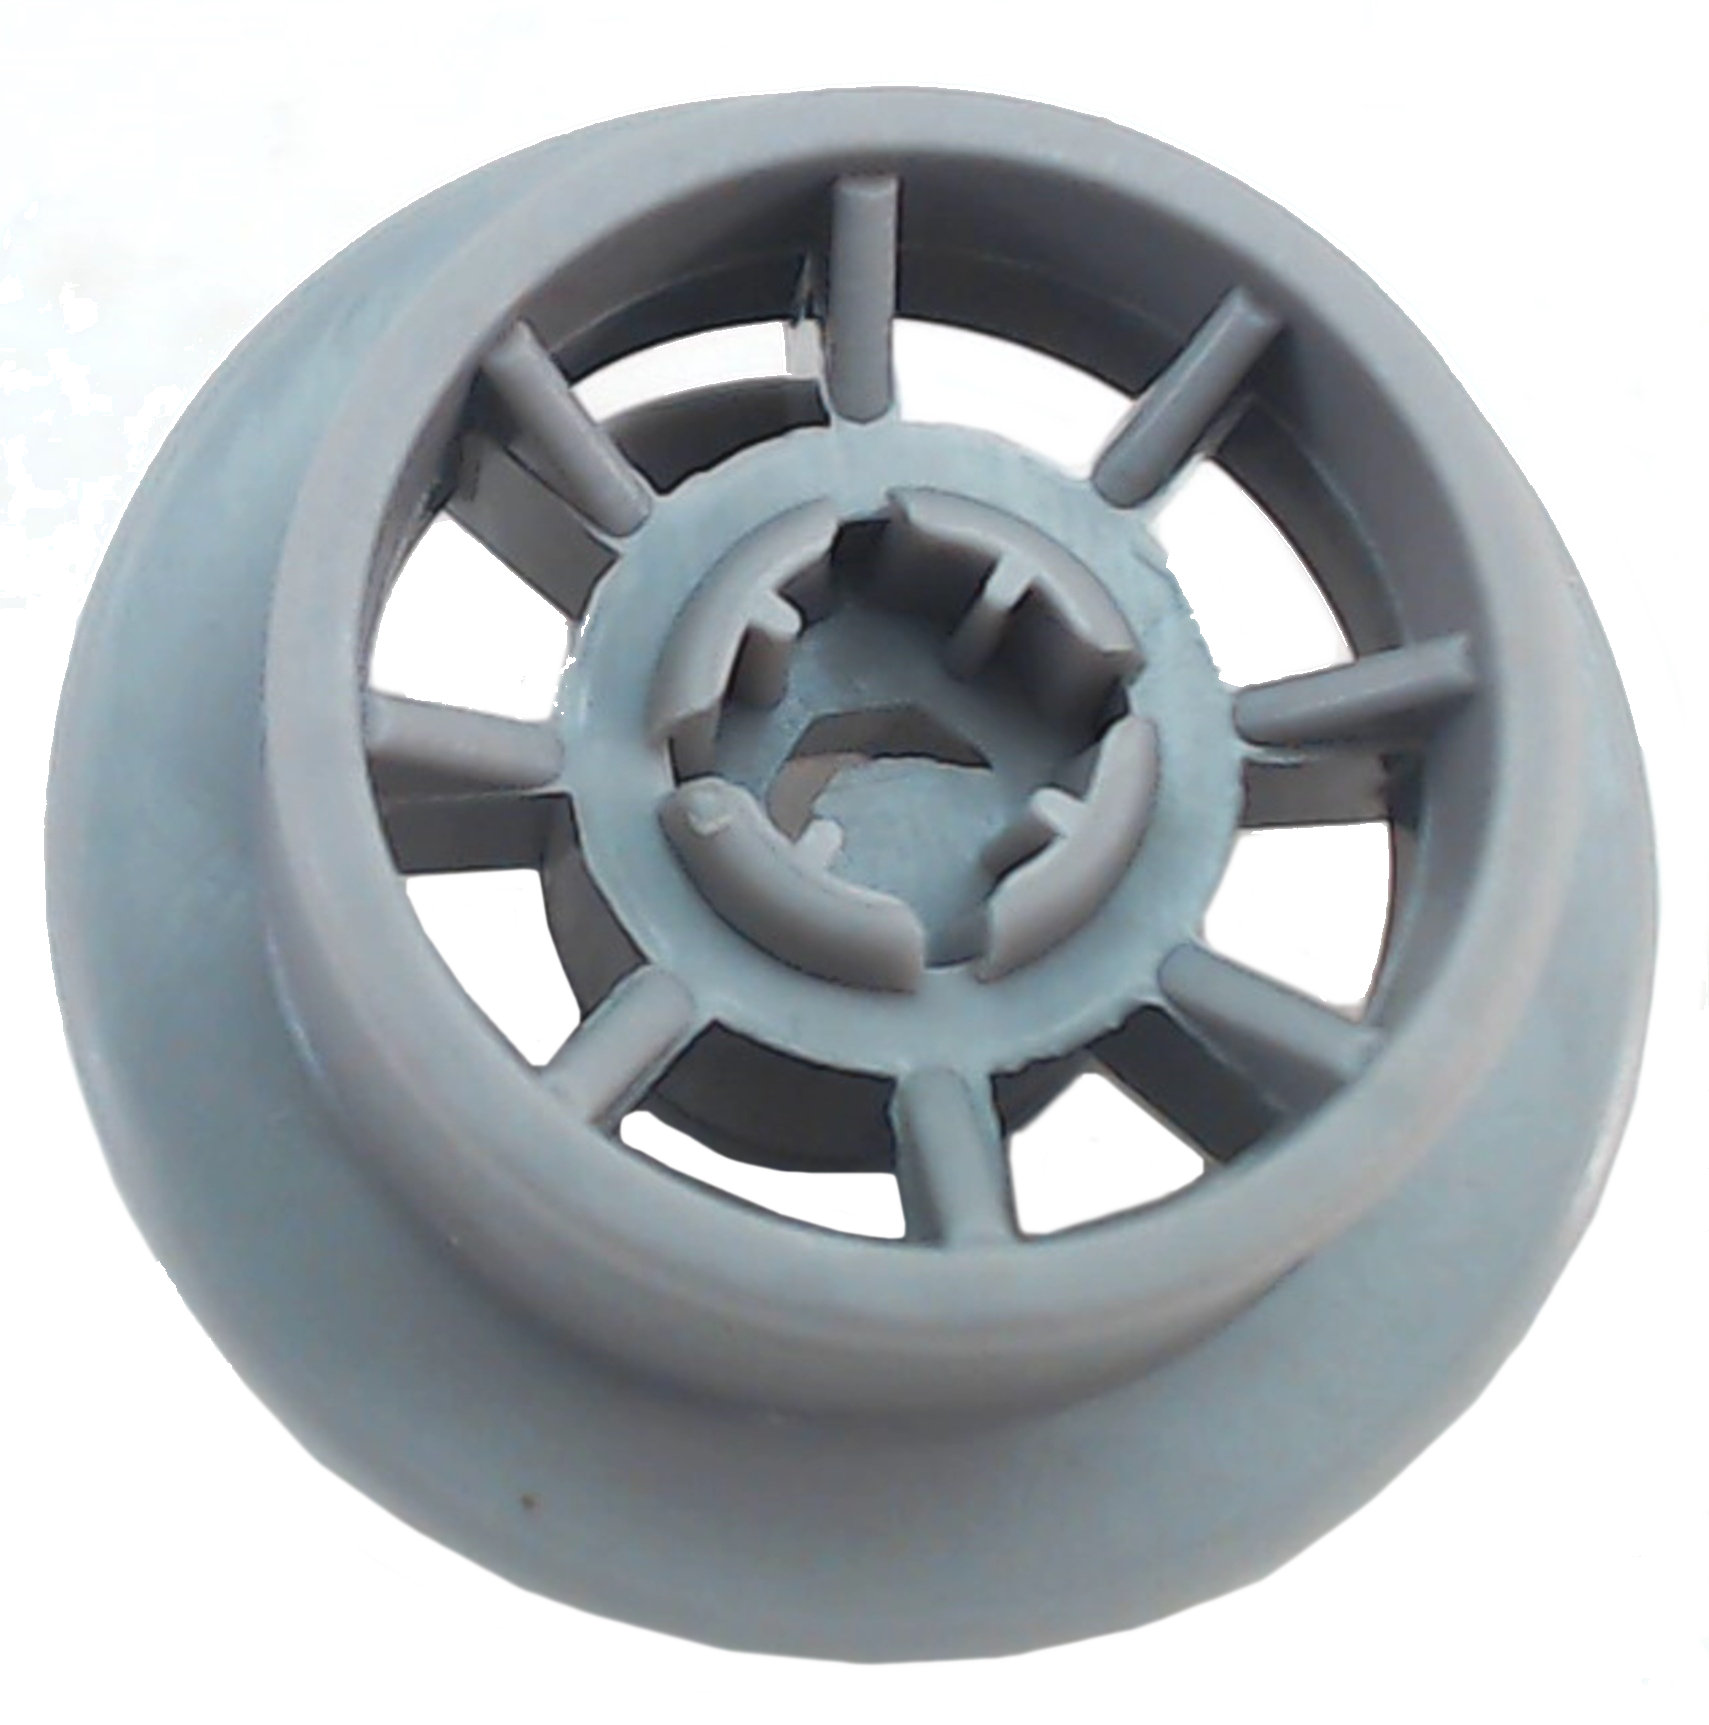 8Pieces 36mm Dia 165314 Dishwasher Rack Roller Wheels Replace 00420198